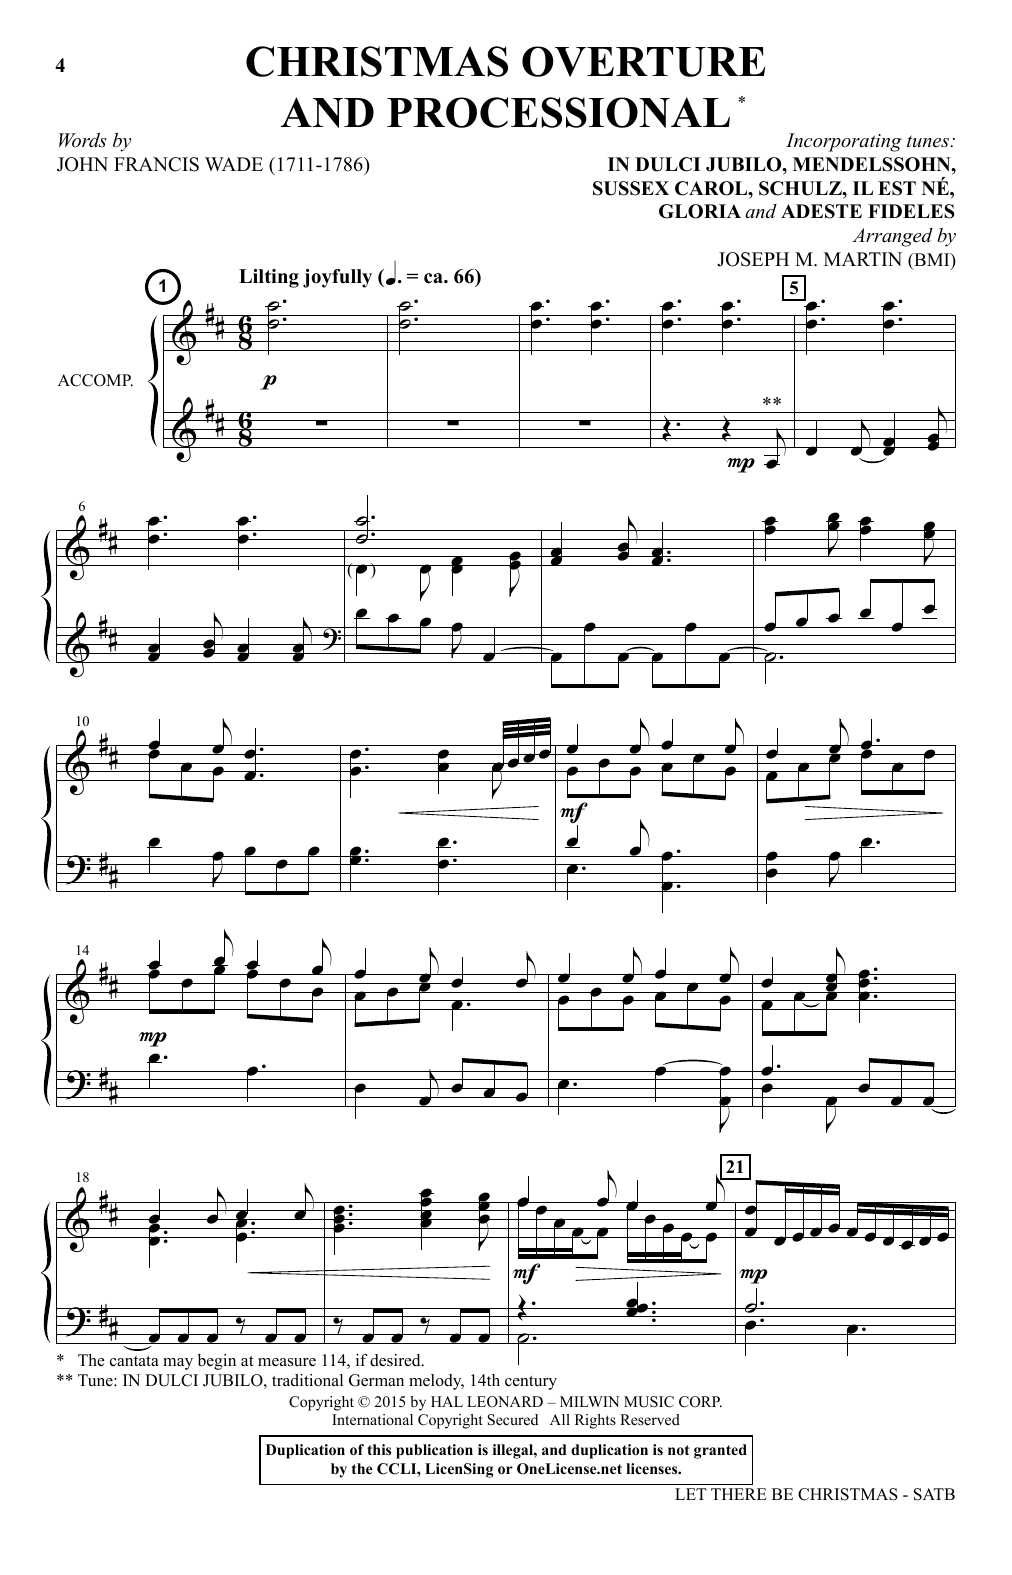 Let There Be Christmas Sheet Music